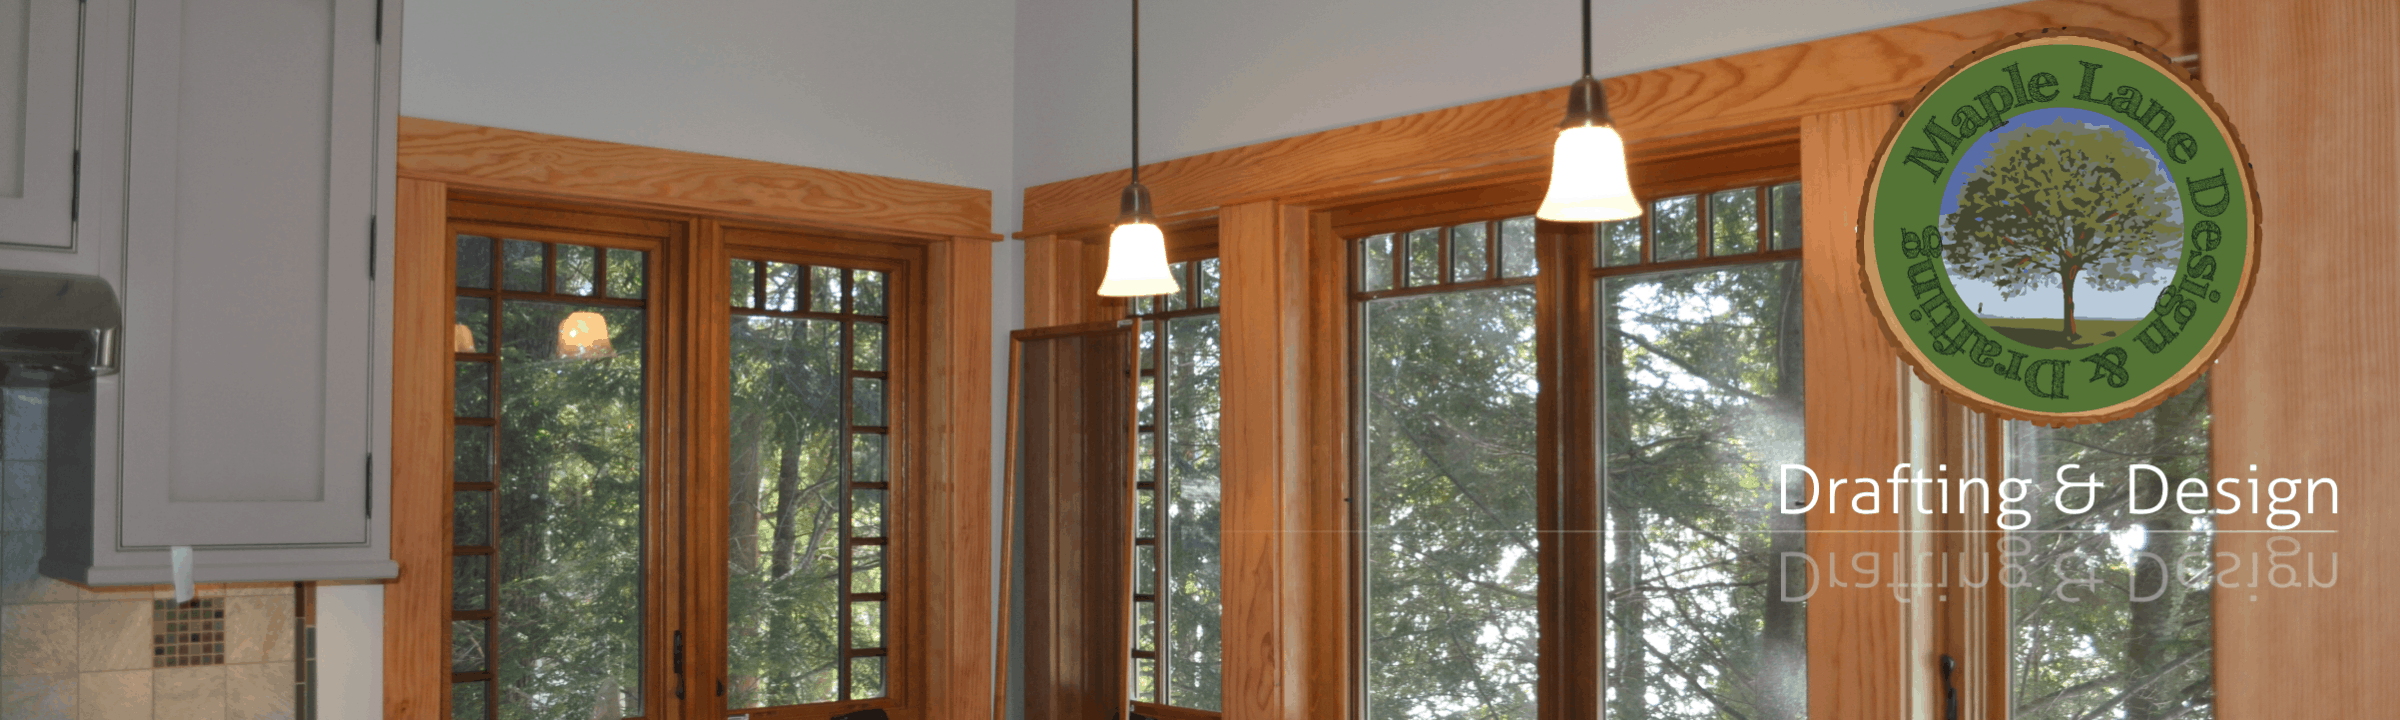 Maple Lane Design and Drafting